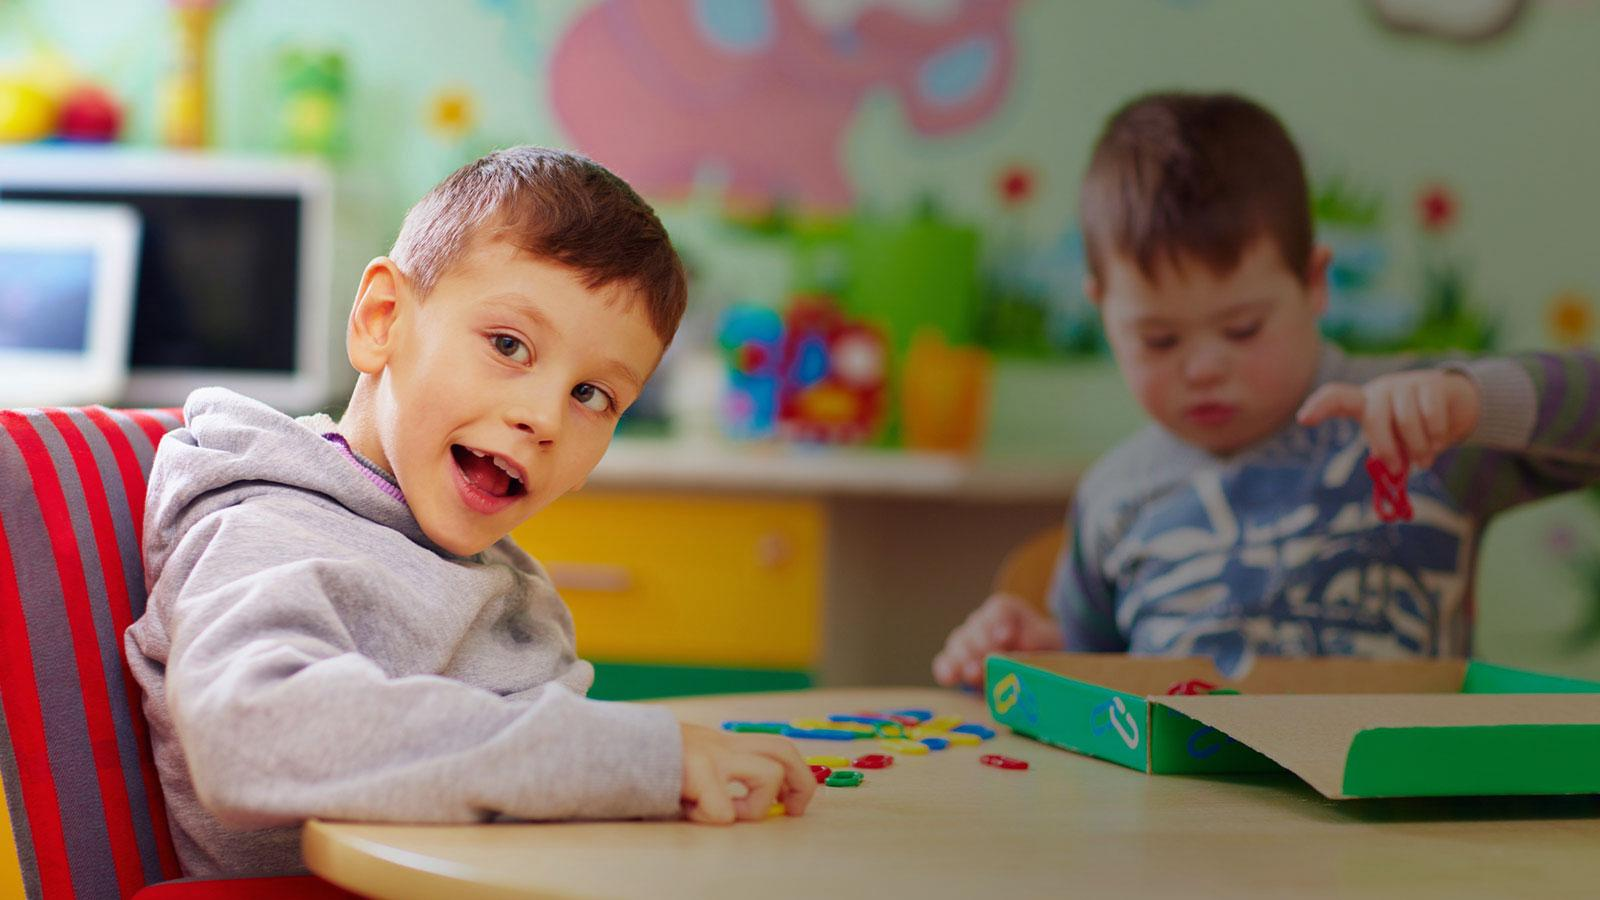 2 boys with special needs playing with toys while sitting at desk in daycare